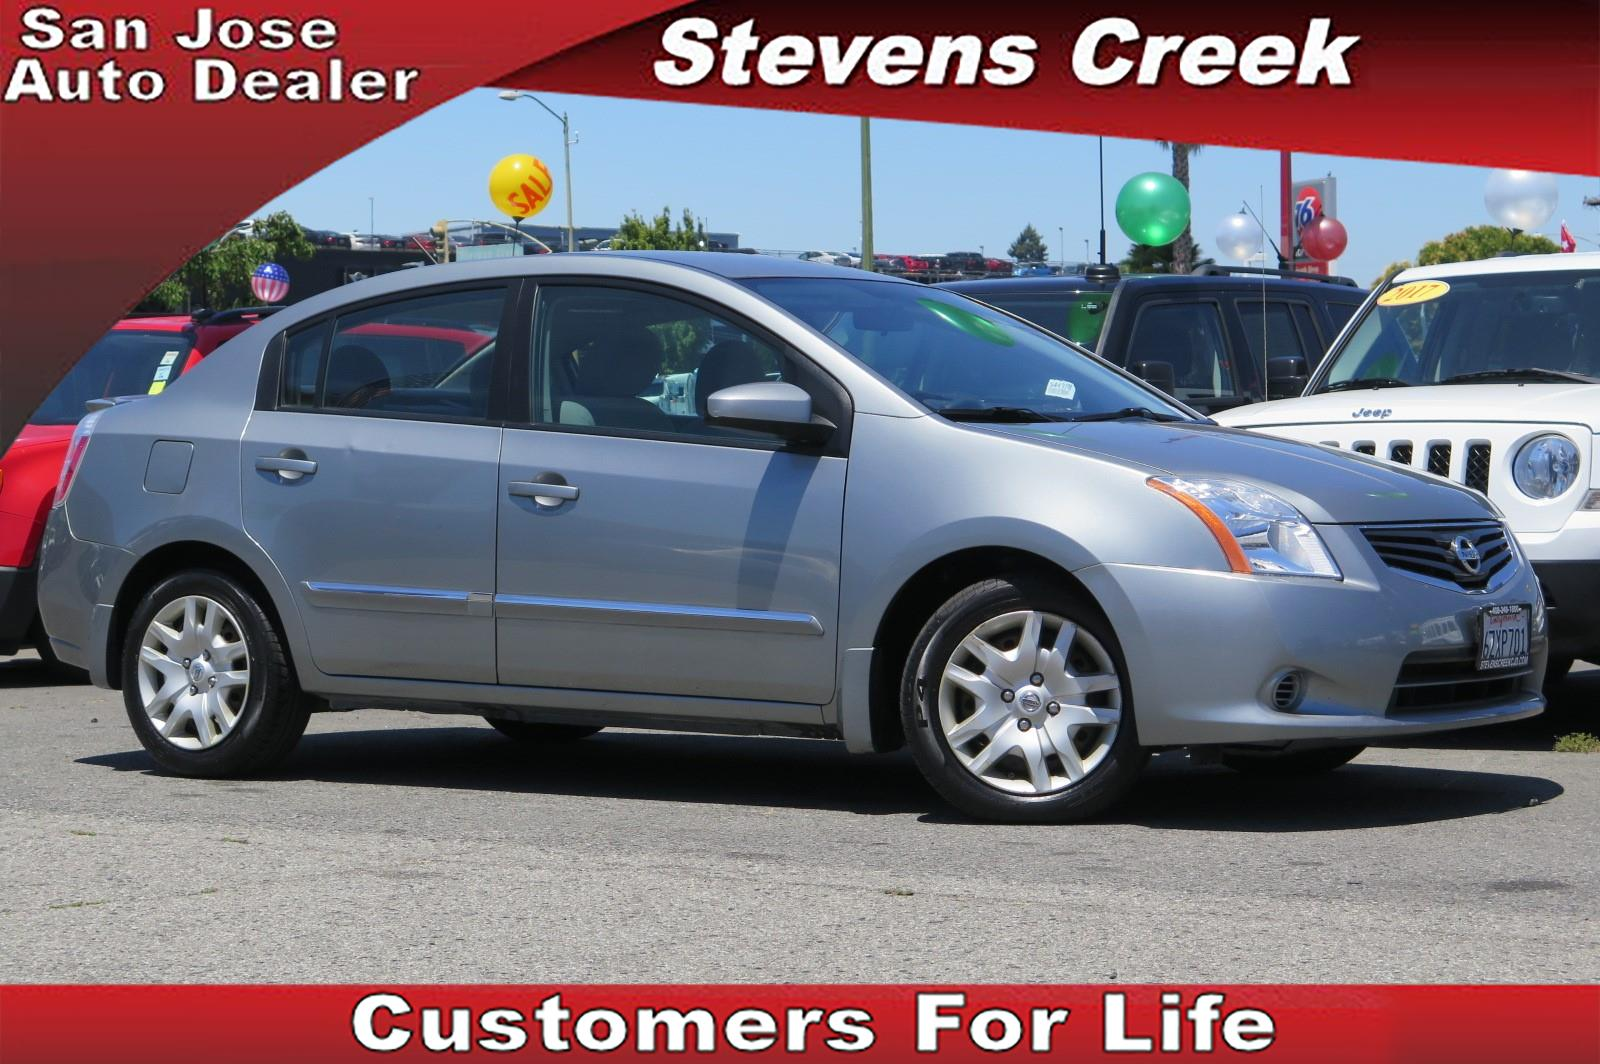 Stevens Creek Chrysler Jeep Dodge 2012 Nissan Sentra In San Jose California